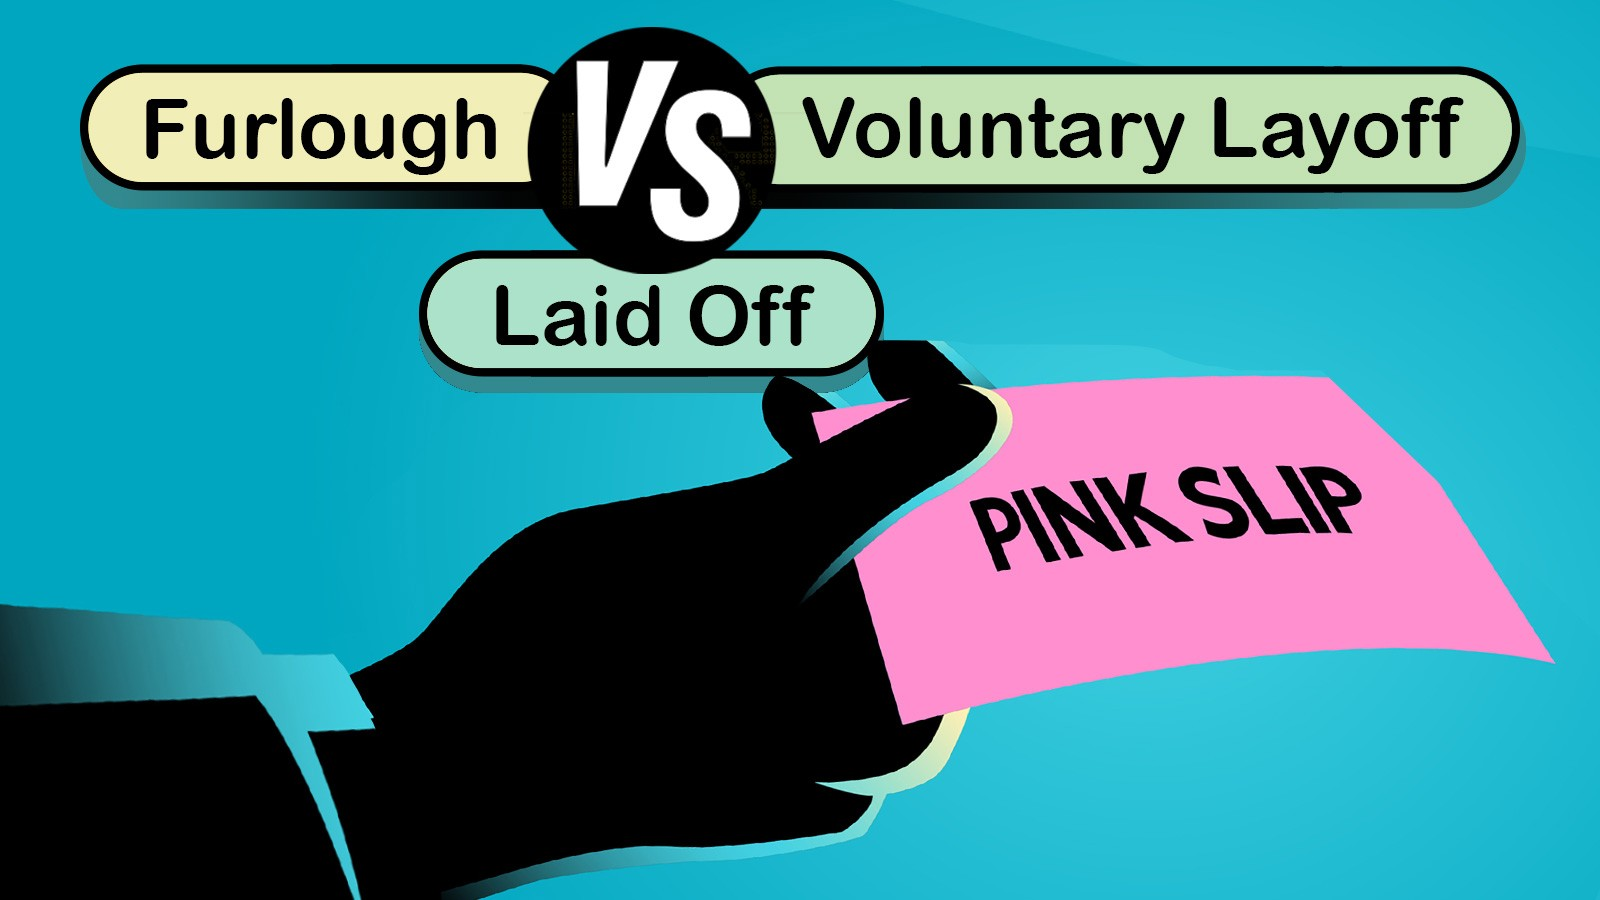 furlough vs laid off vs voluntary layoff